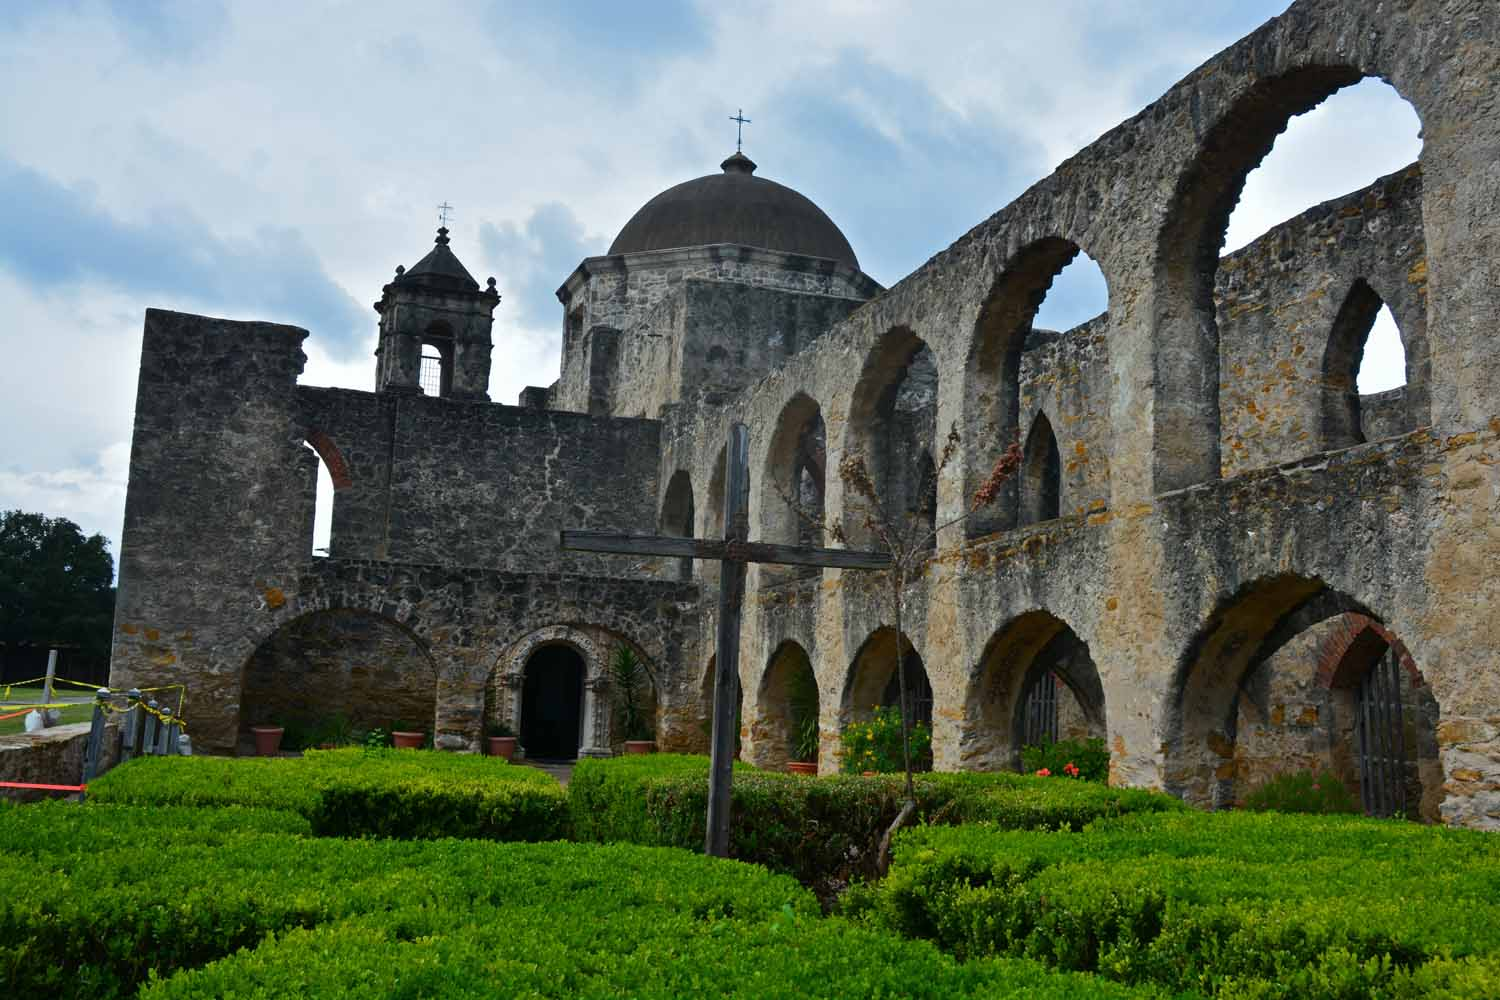 San Antonio Missions very interesting...management shared with the church and federal government...odd bedfellows for sure...Only President Carter could have carried this off!